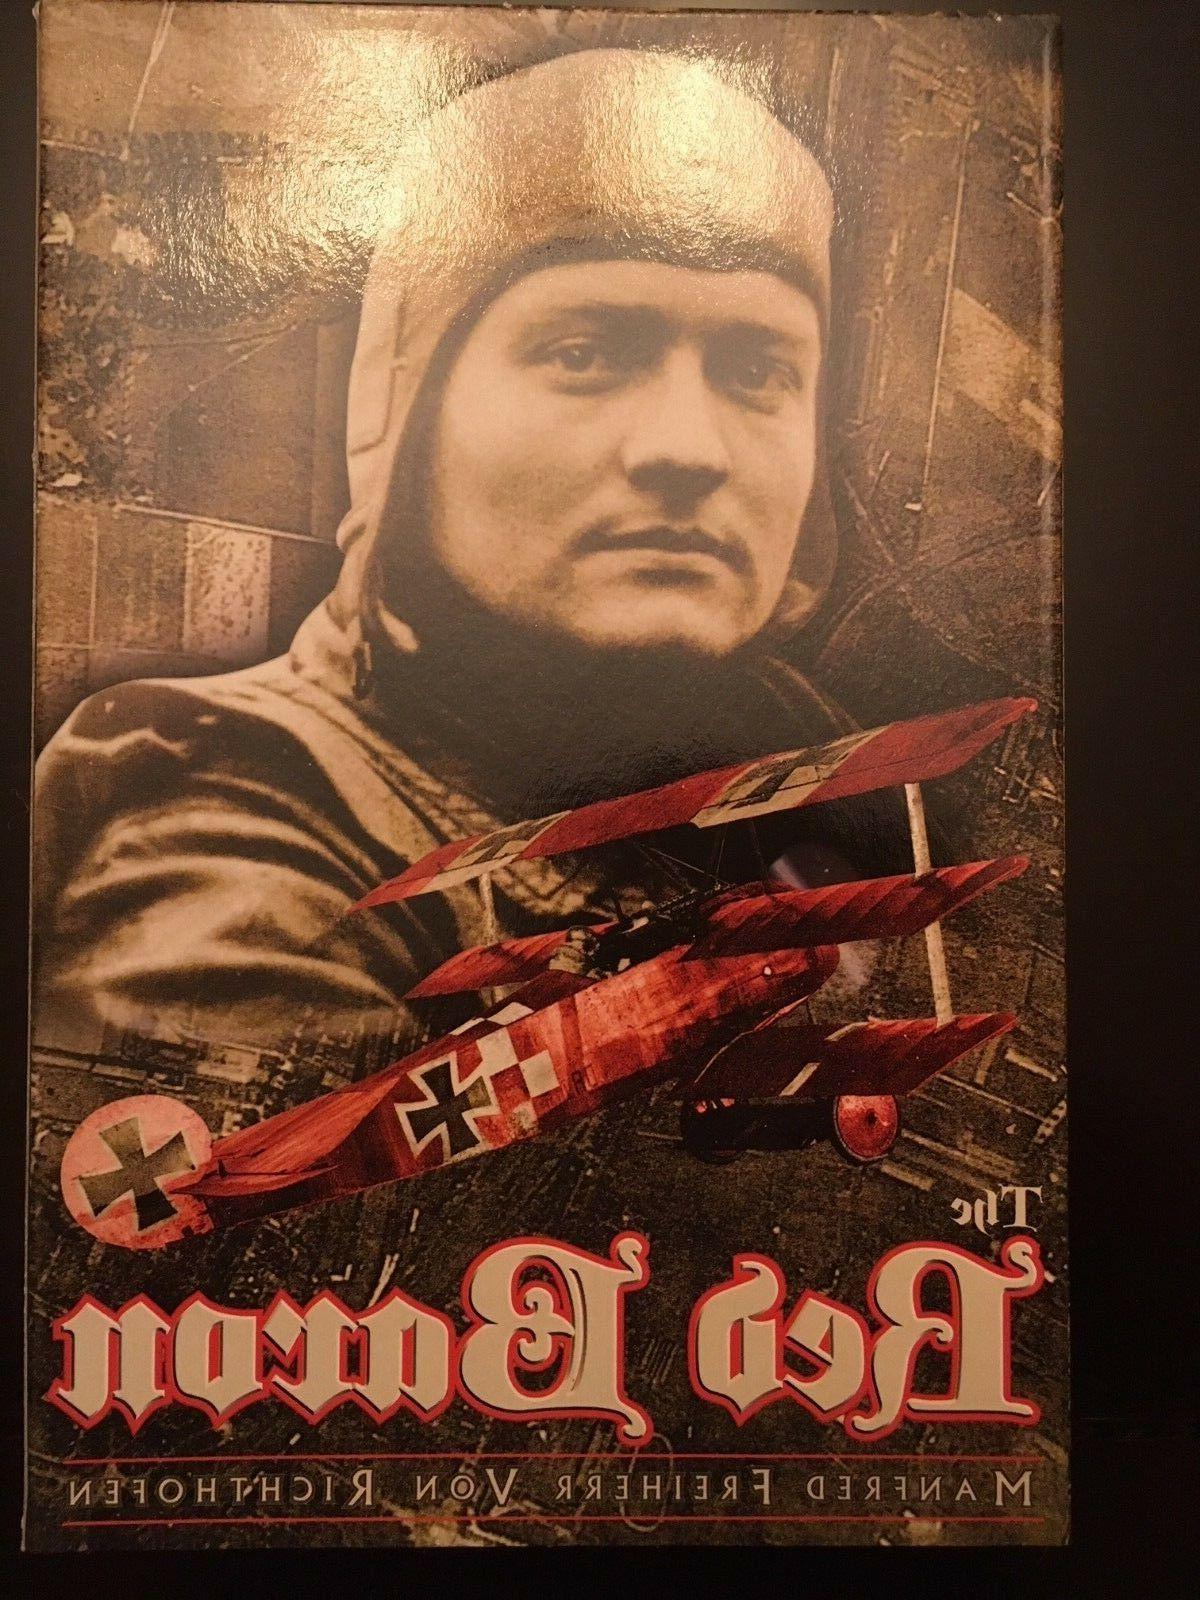 the red baron collectible 12 inch figure